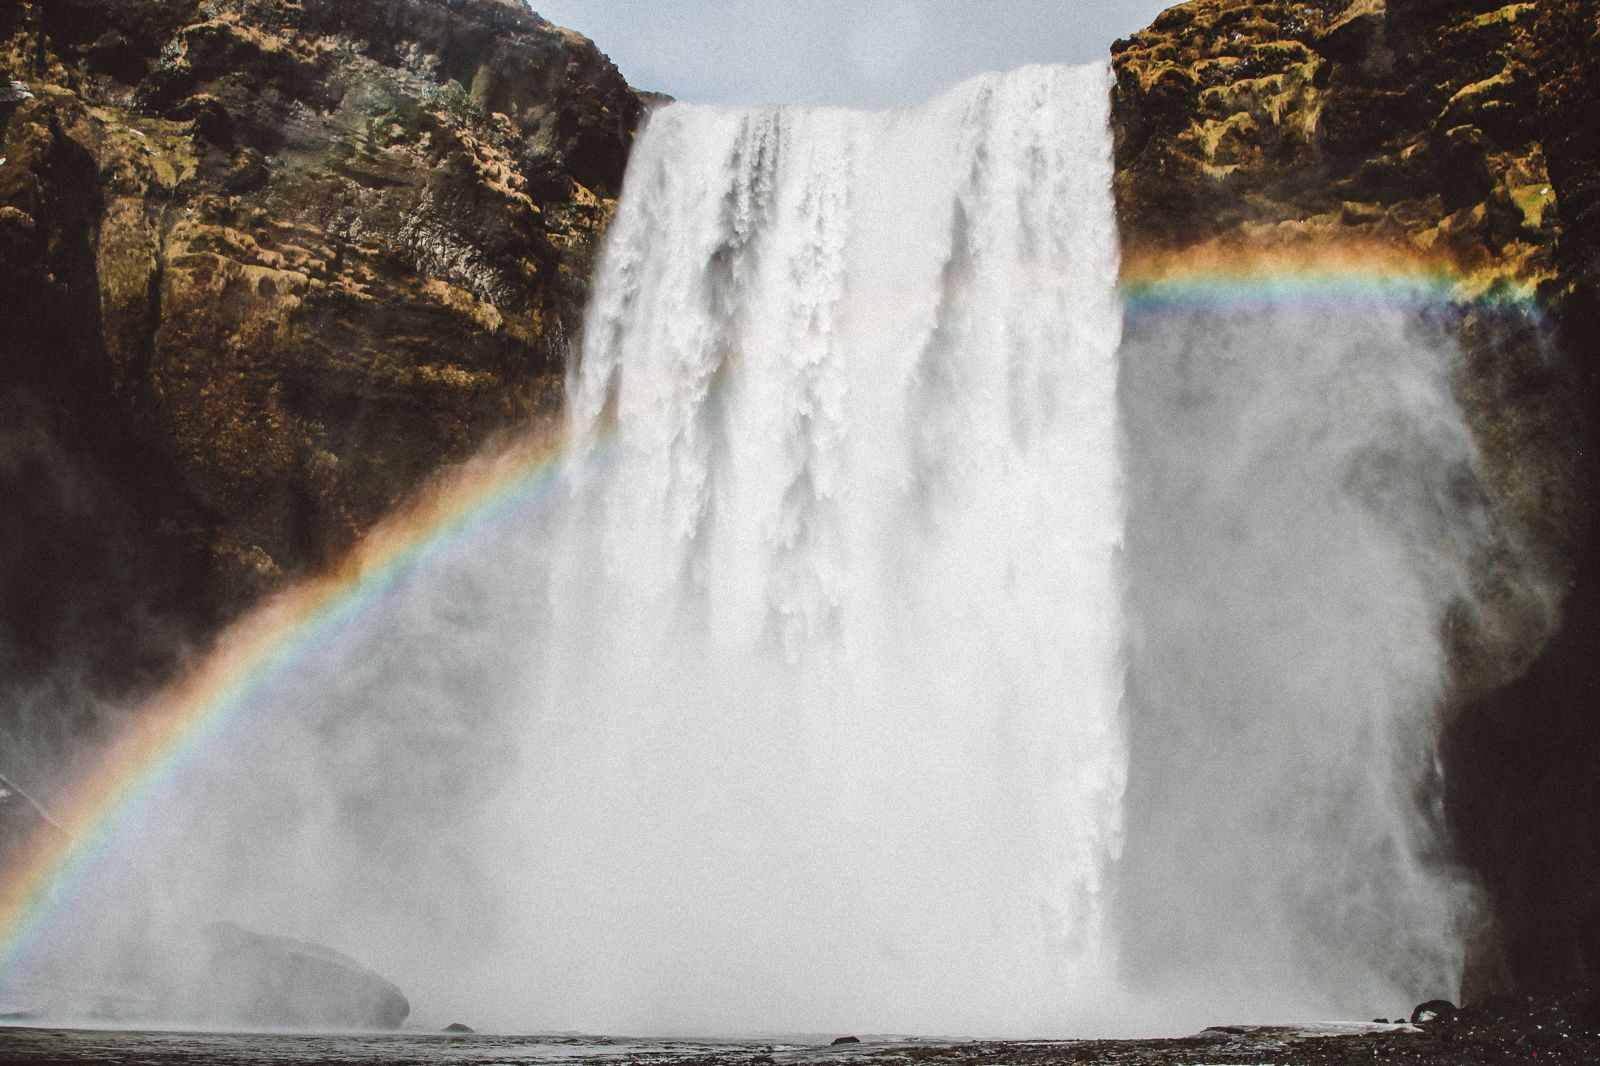 Seljalandsfoss and Skógafoss Waterfalls in Iceland plus Icelandic Lamb and rainbows (40)